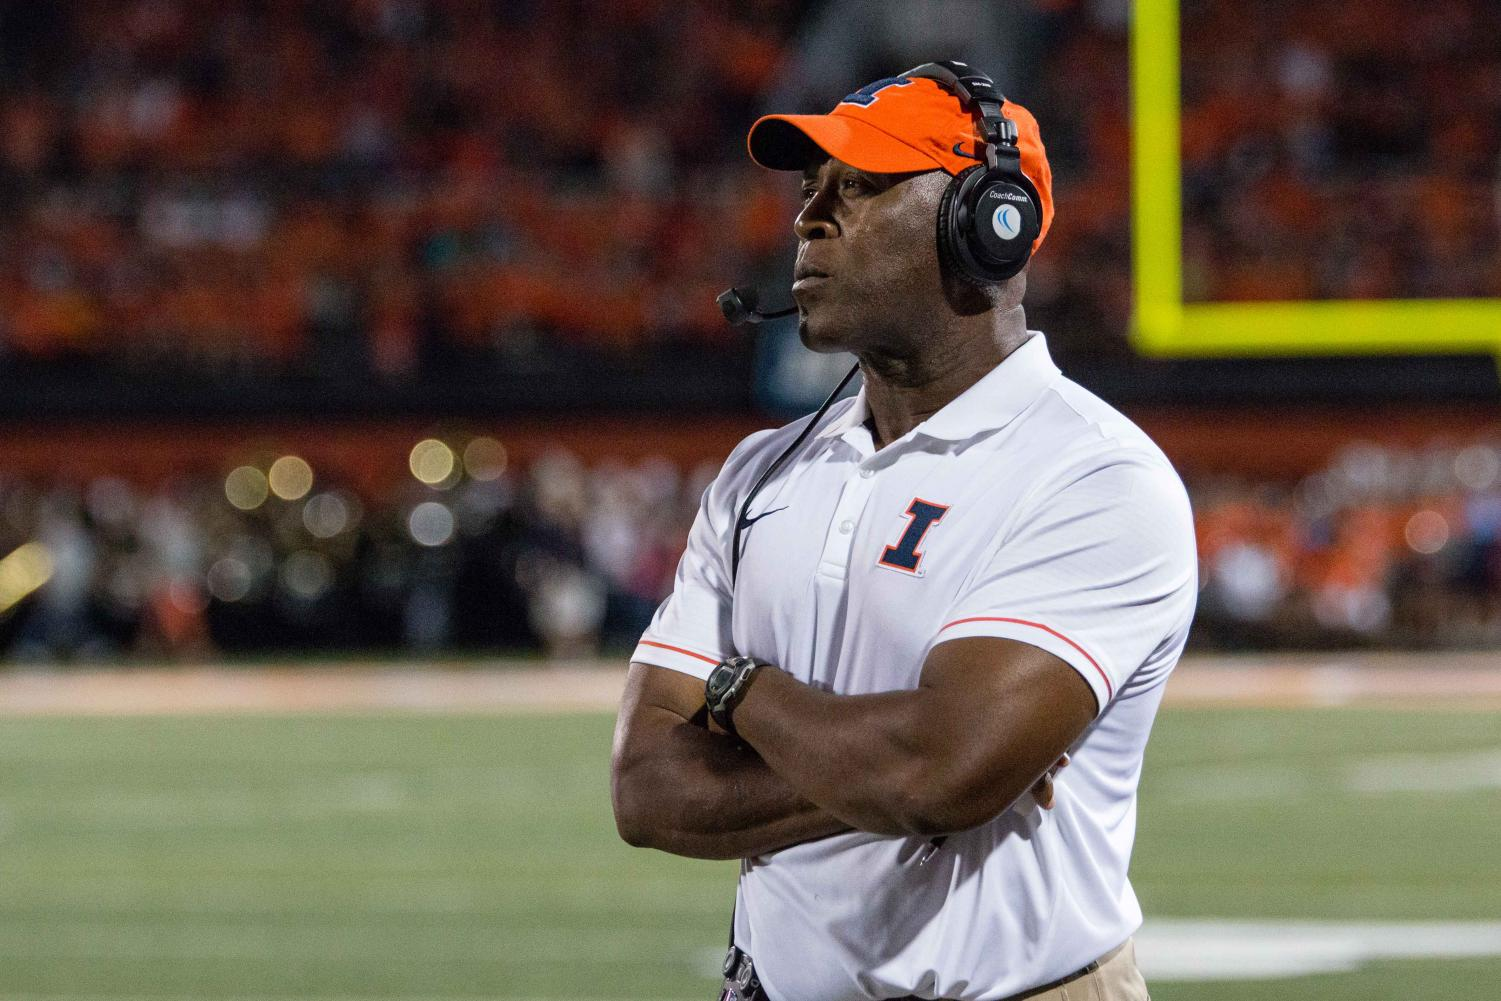 Illinois head coach Lovie Smith watches his team from the sidelines during the game against North Carolina at Memorial Stadium on Saturday, September 10. The Illini loss 48-23.